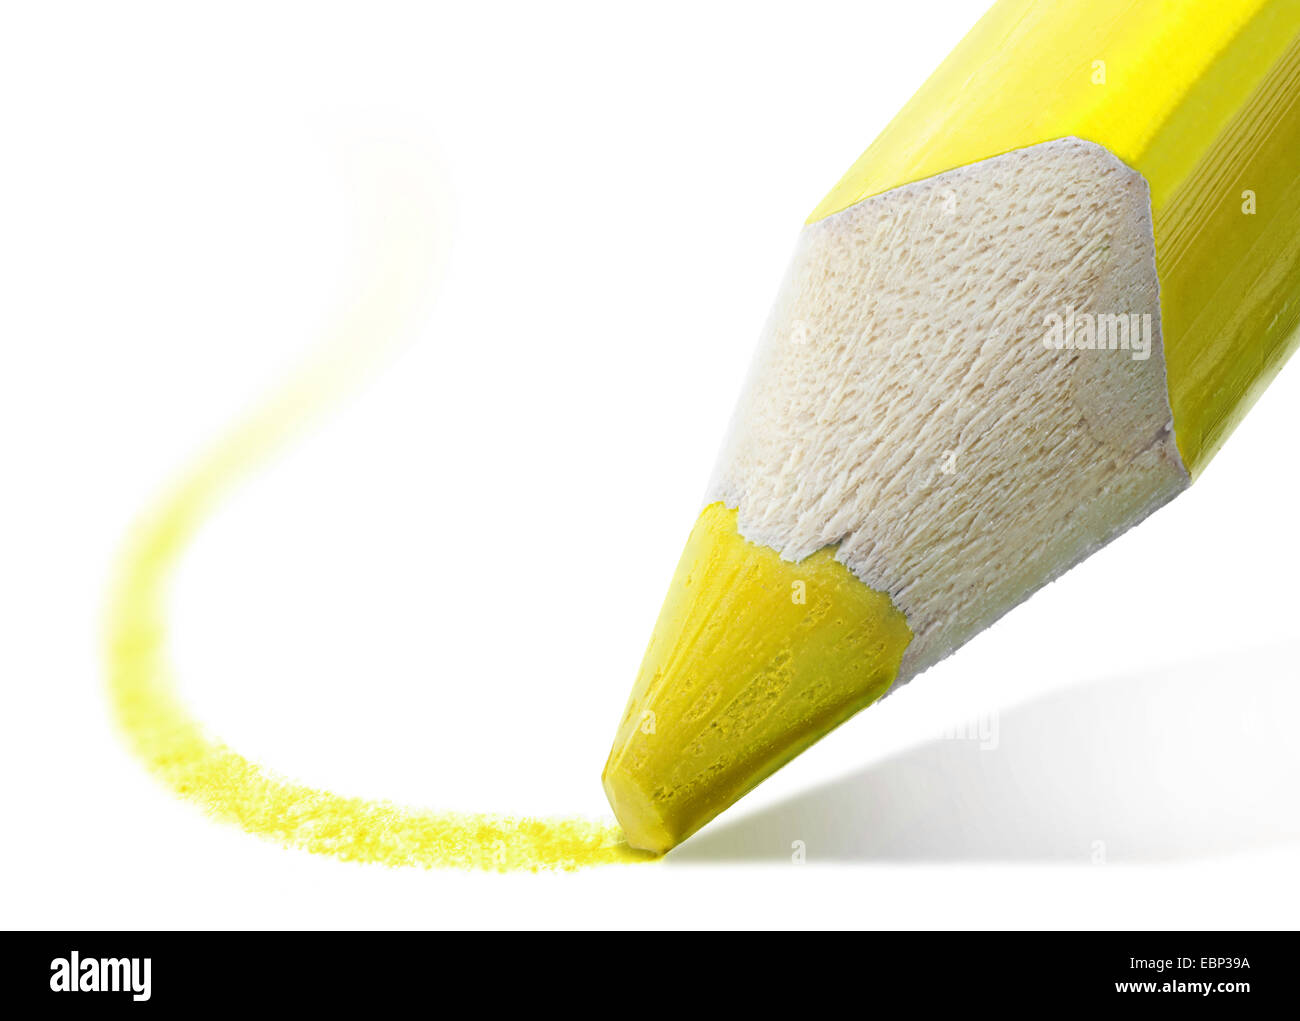 macro shot of the tip of a yellow pencil - Stock Image